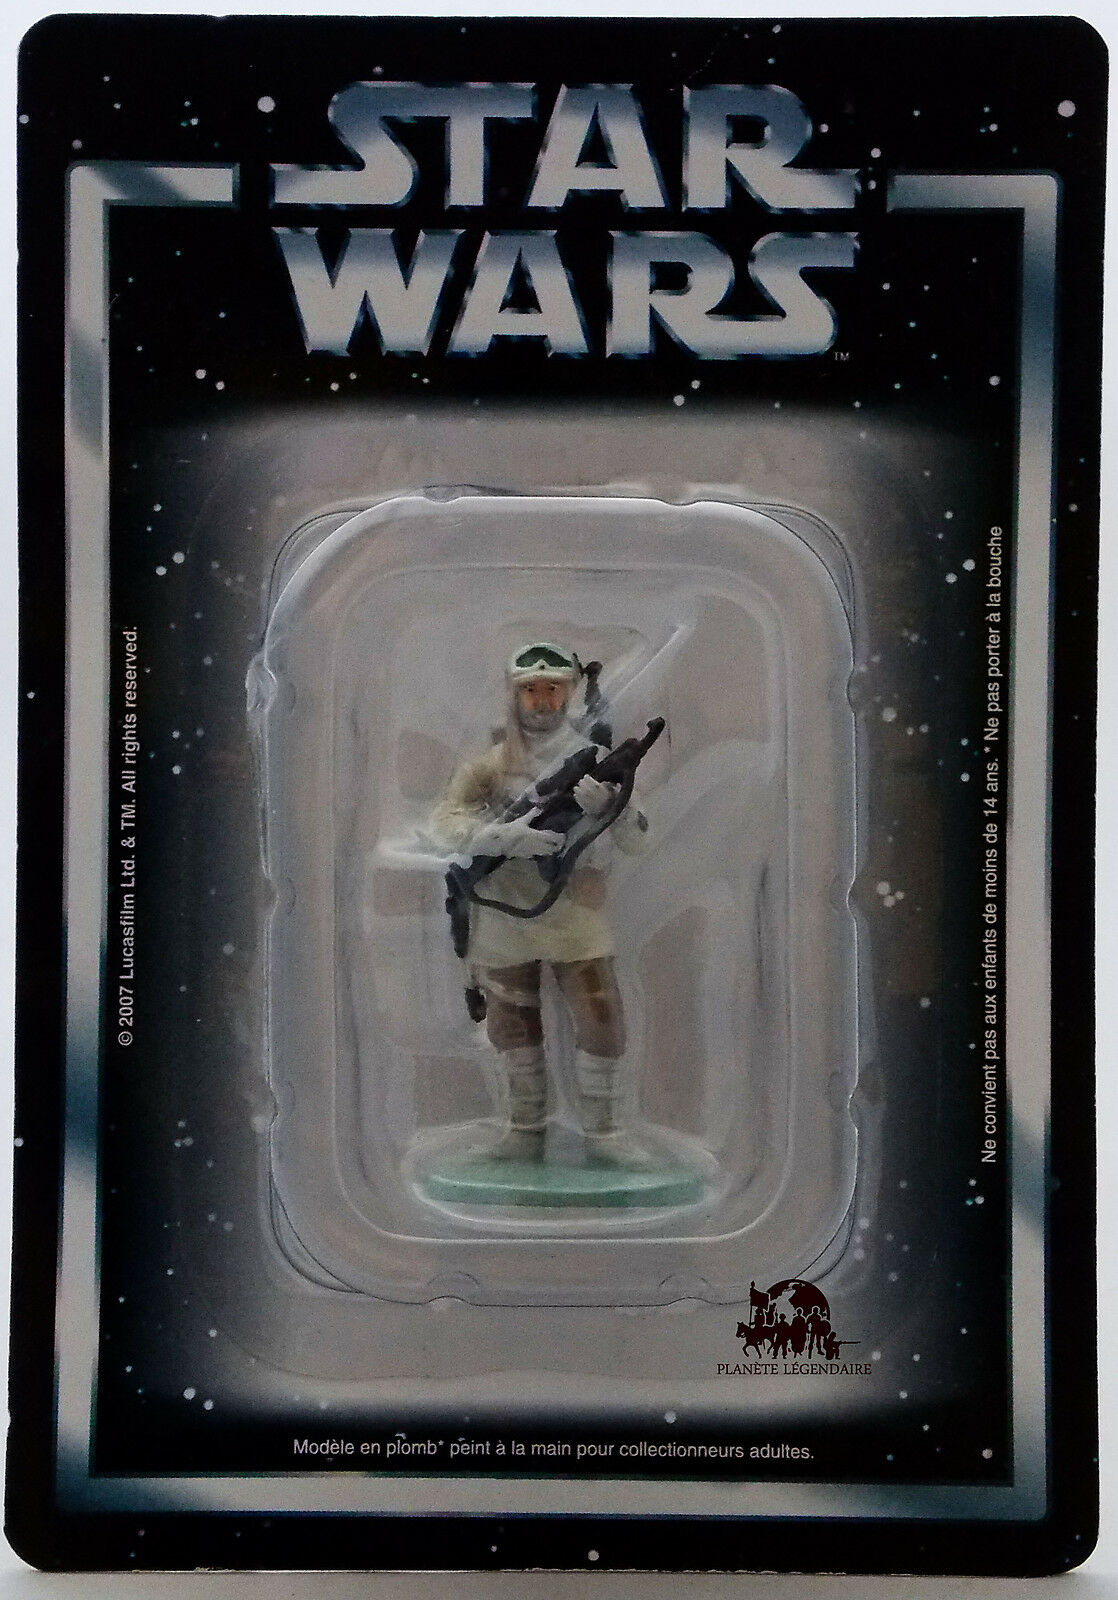 StarWars collection : Figurine collection Atlas STAR WARS Soldat Rebelle HOTH Empire contre Attaque